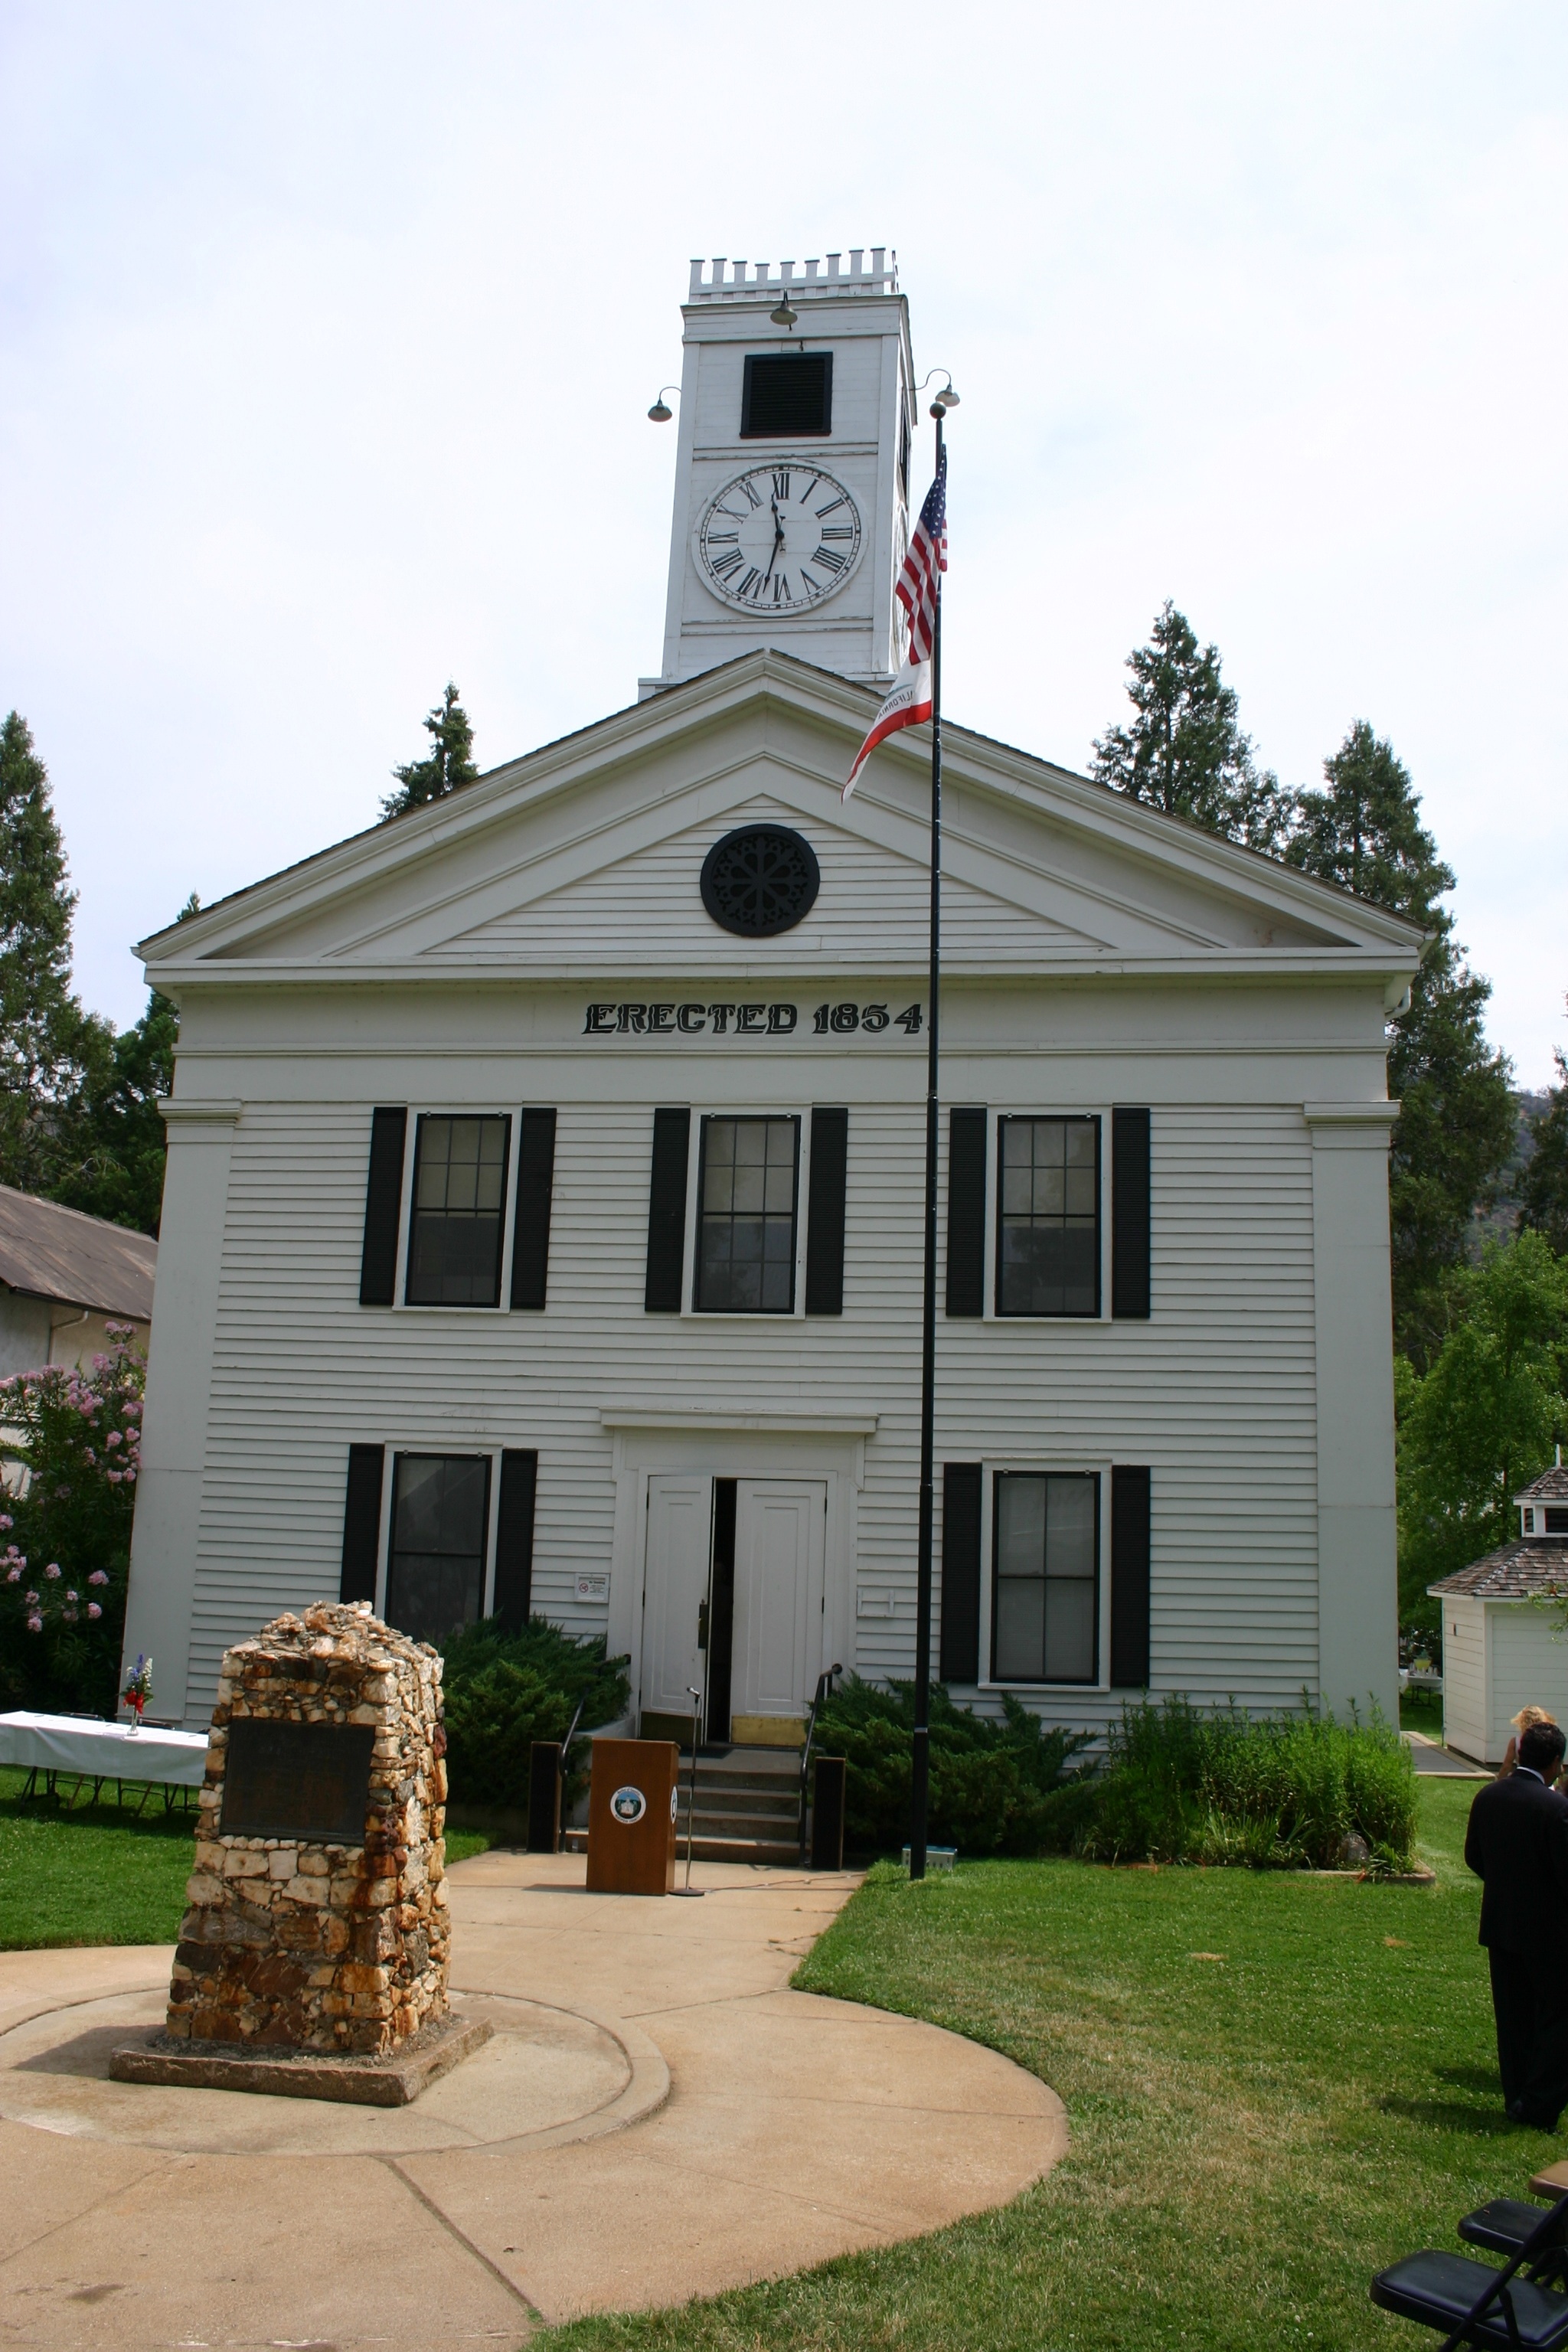 Mariposa Courthouse